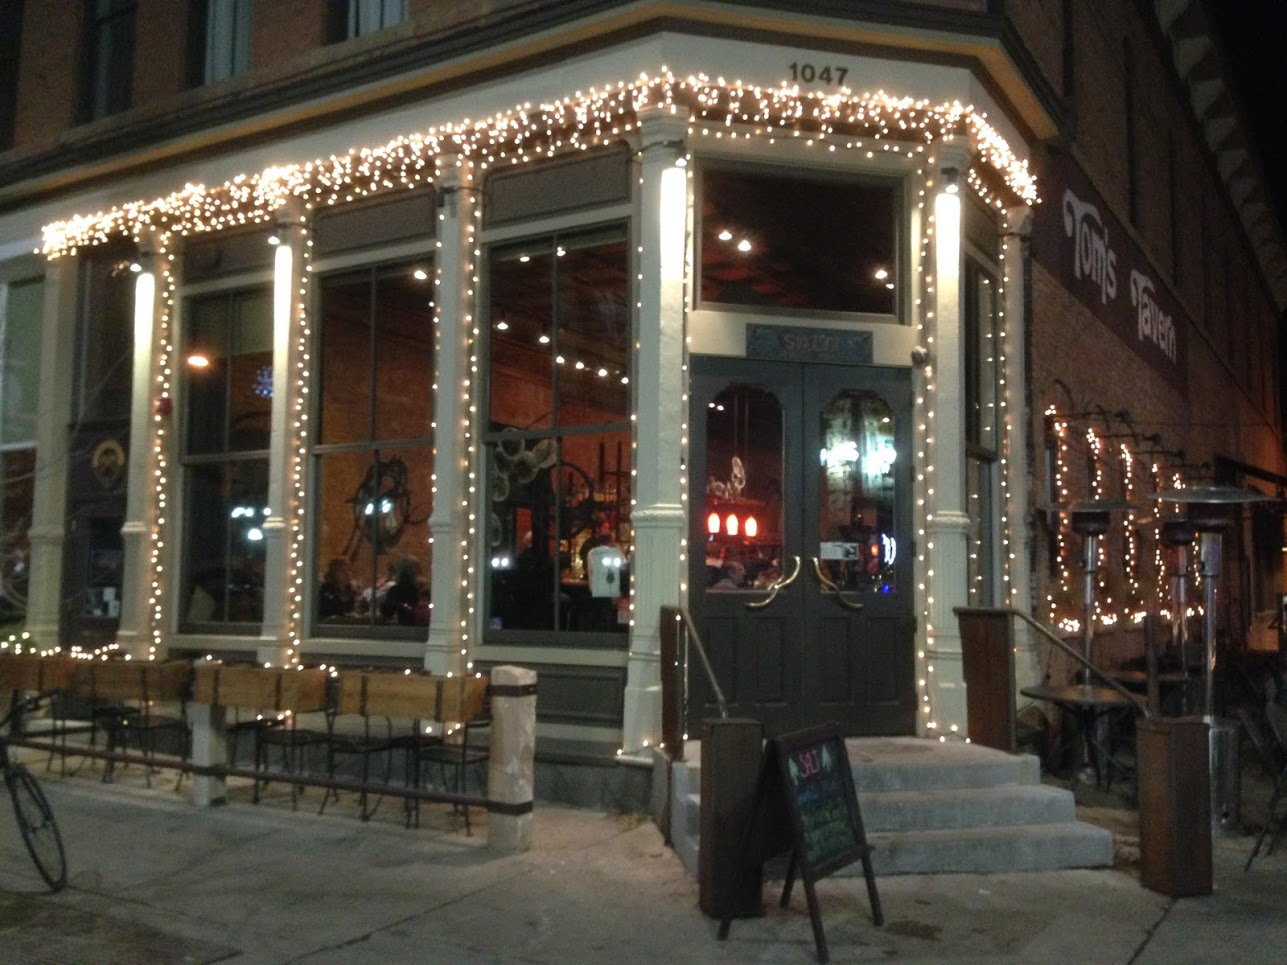 commercial christmas light installation denver boulder co commercial light installation denver boulder co